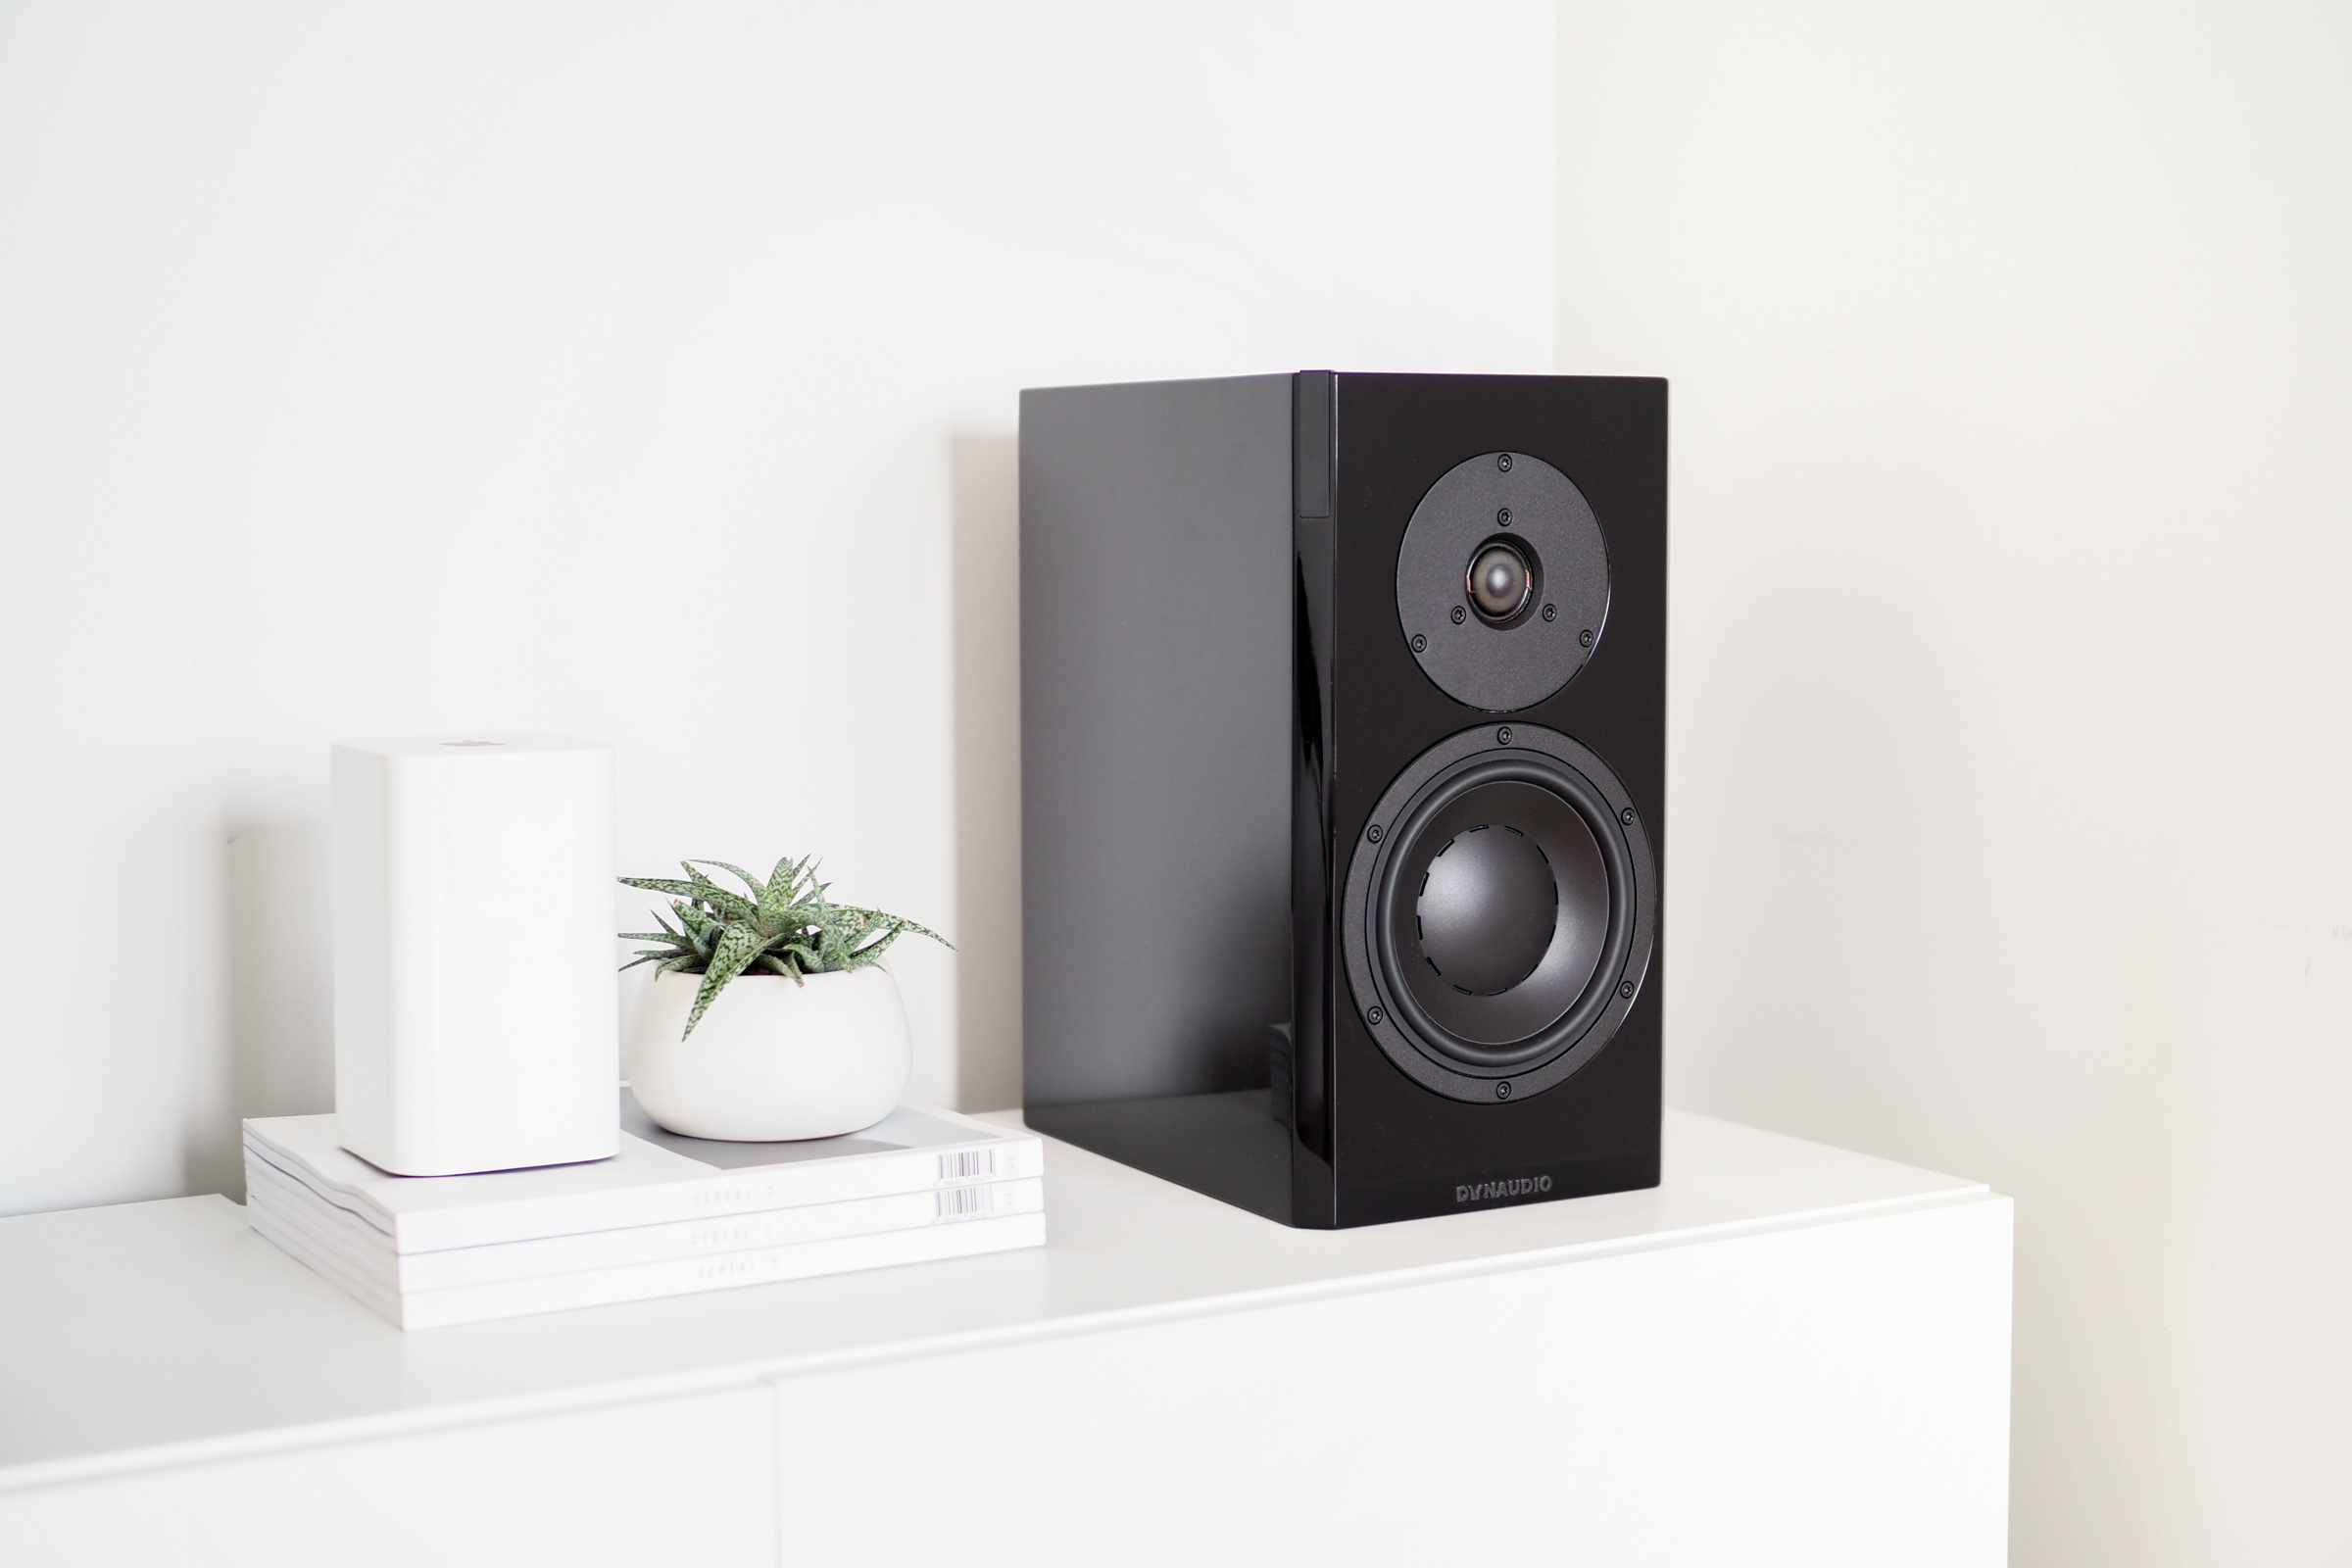 The Versatility Of The Dynaudio Focus 20 XD Speakers